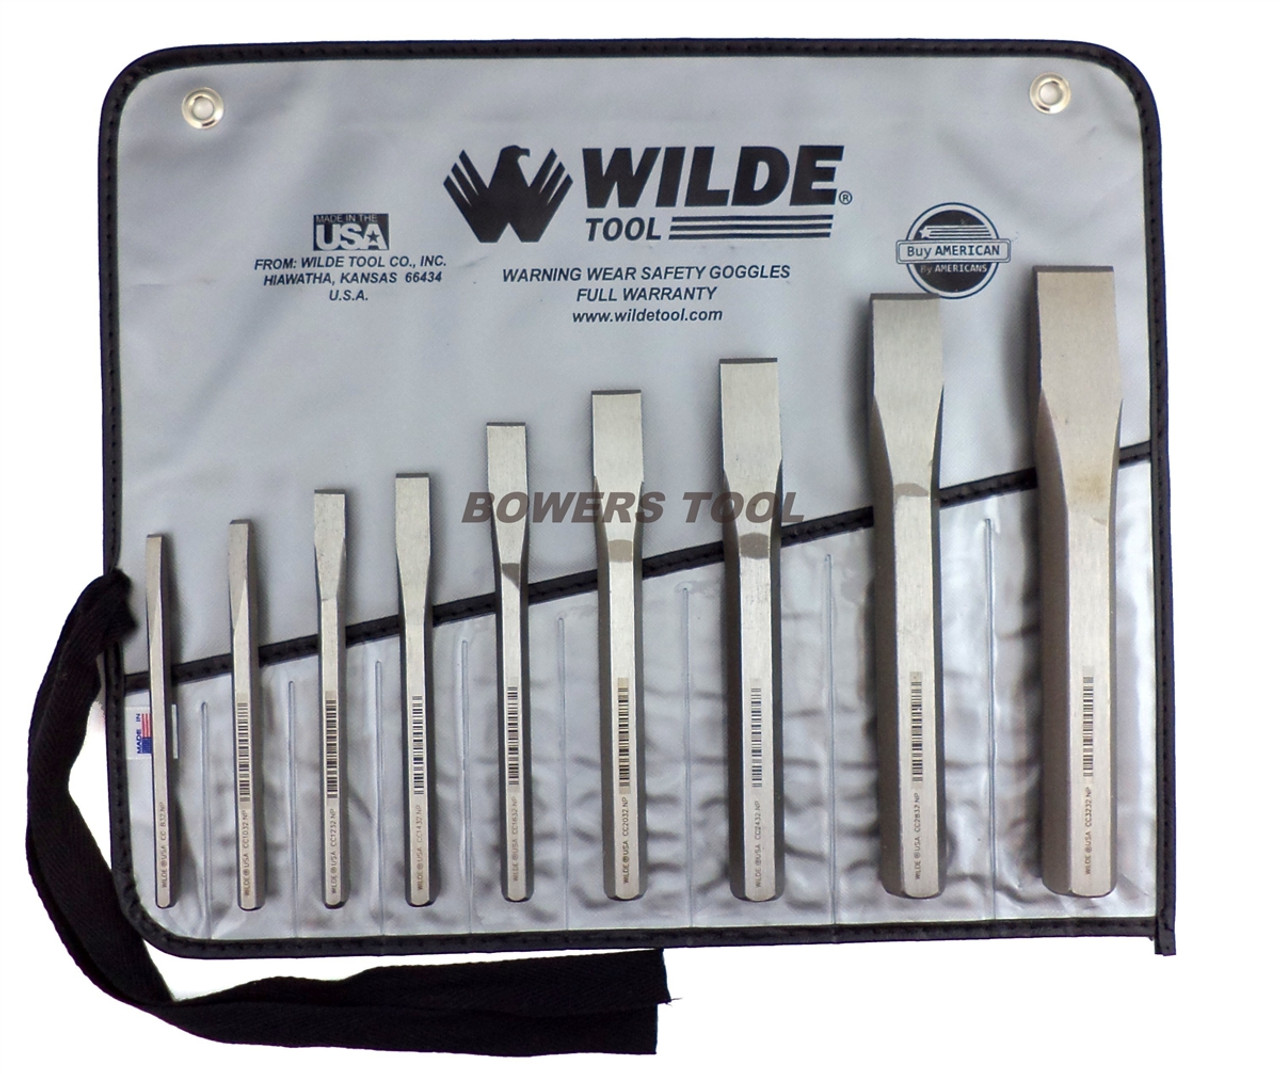 Wilde Tool 12pc Professional Punch /& Chisel Set MADE IN USA Vinyl Case